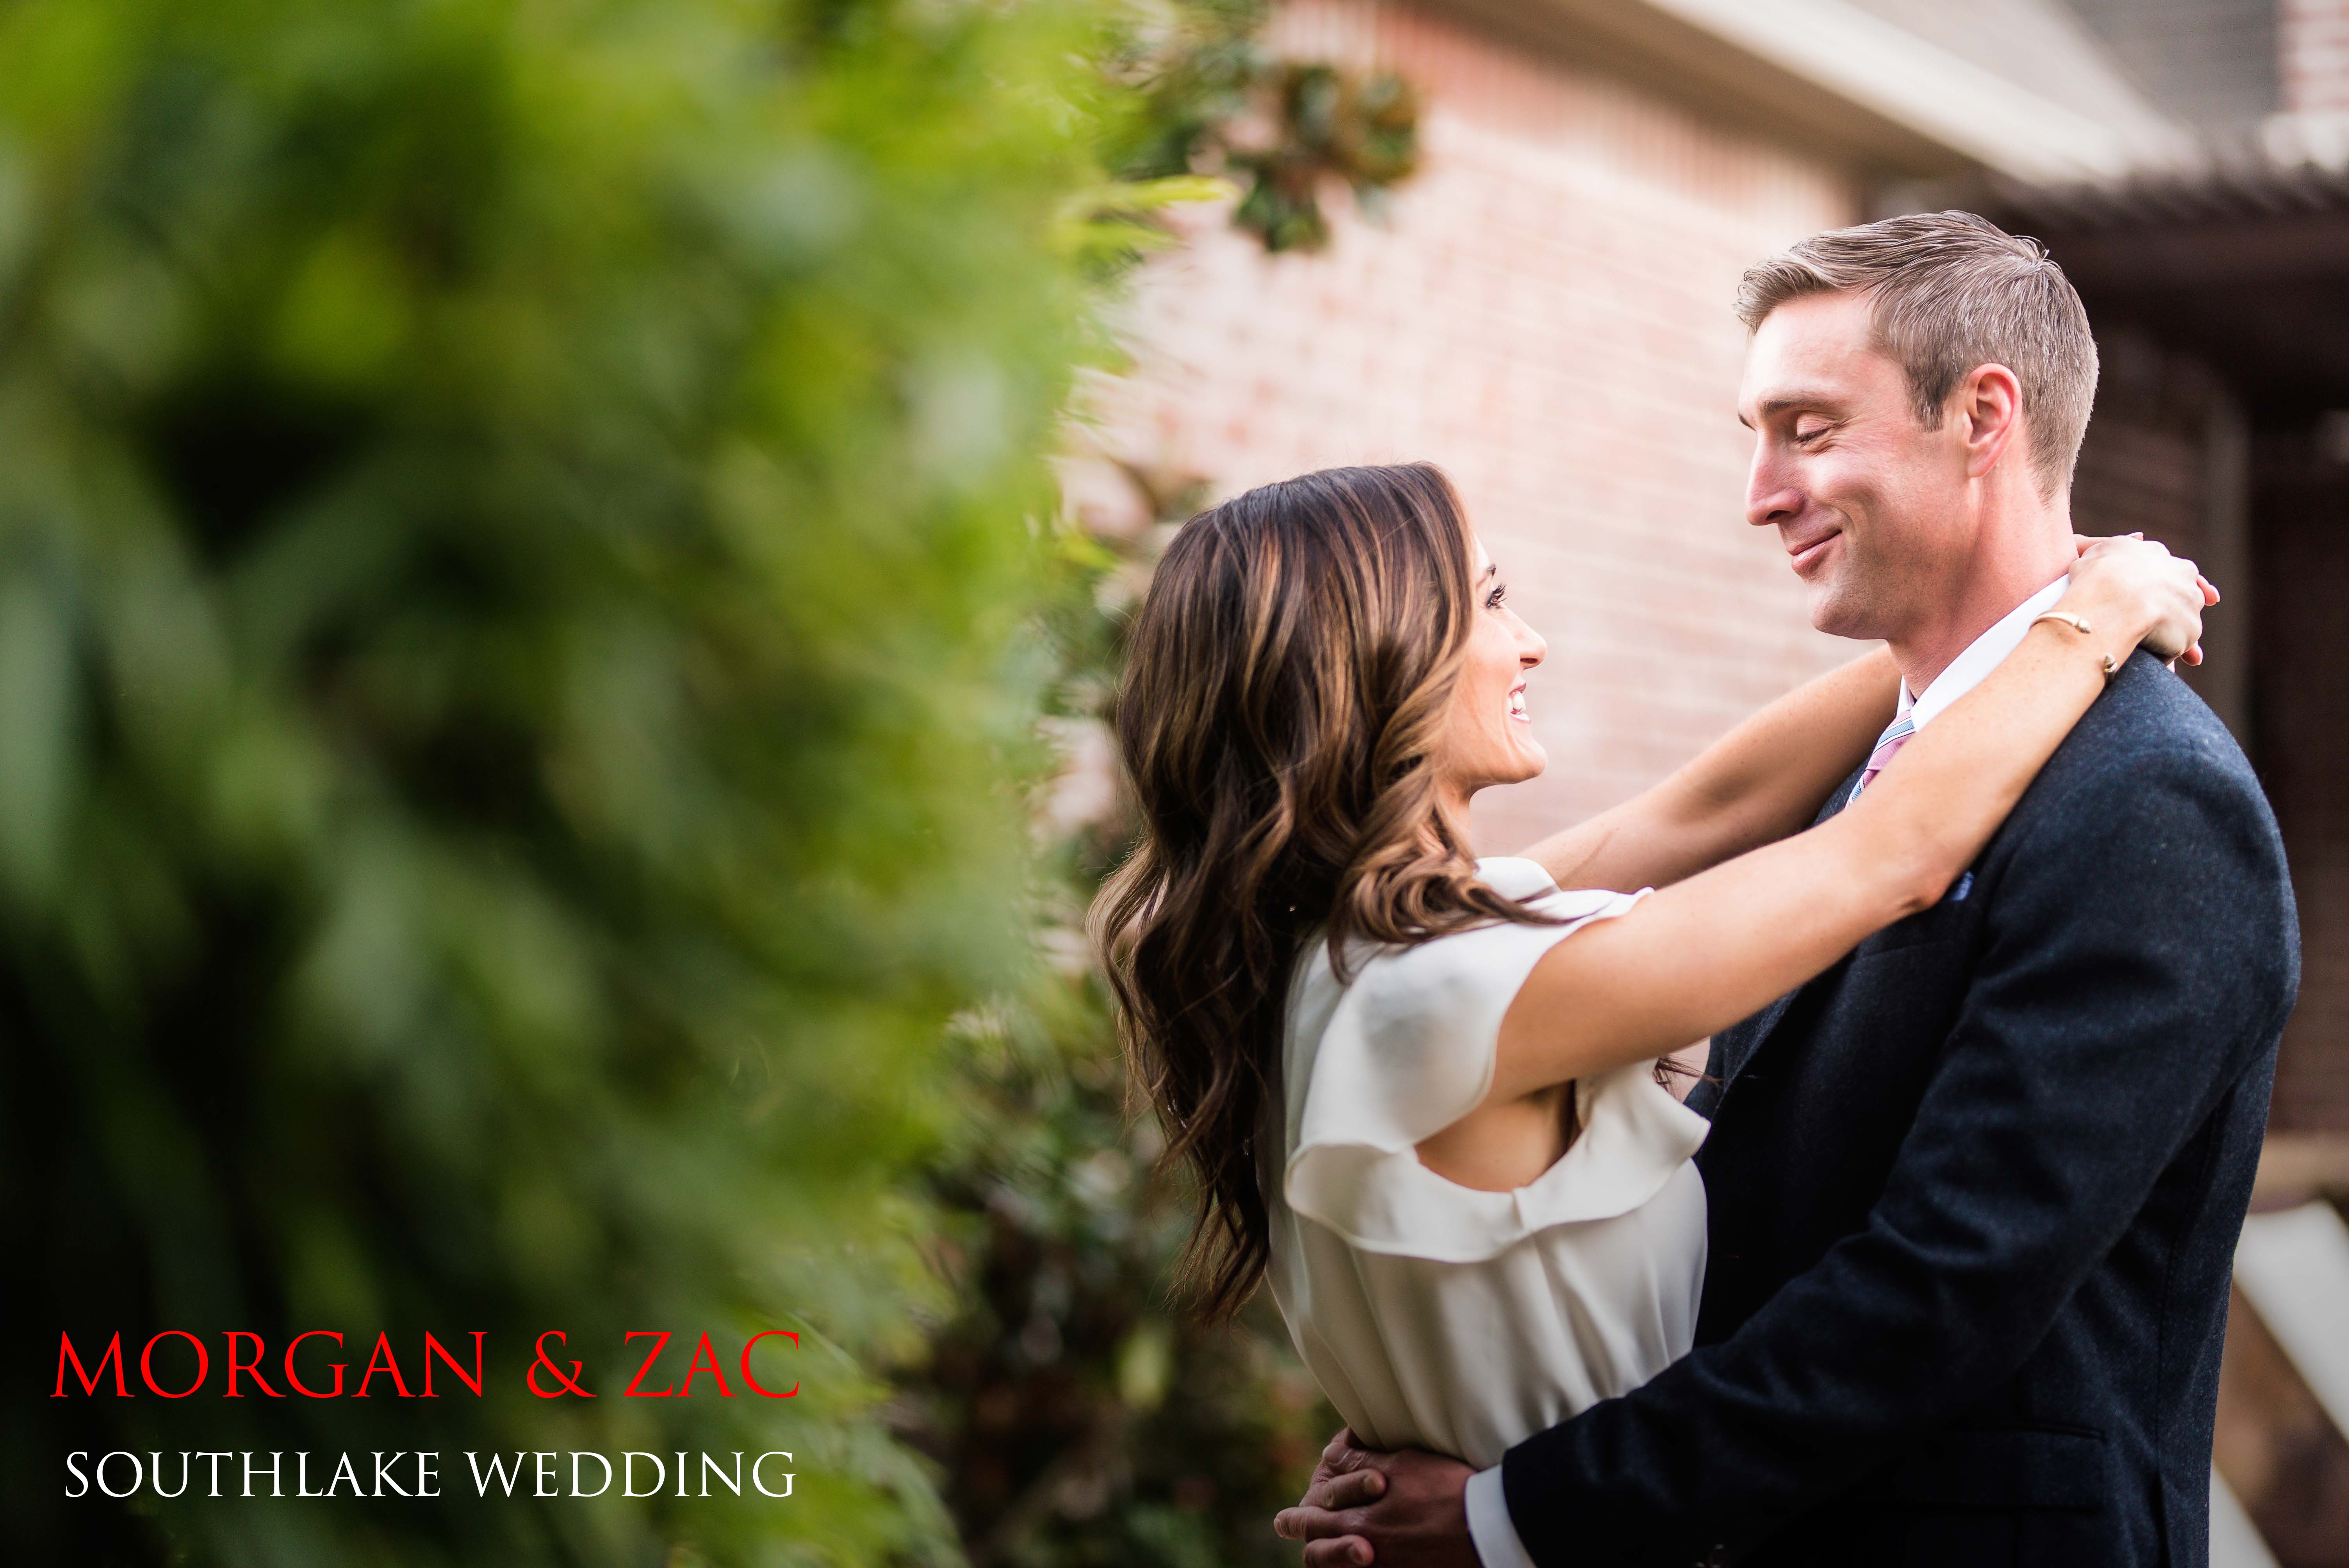 Southlake Wedding - Dallas Wedding